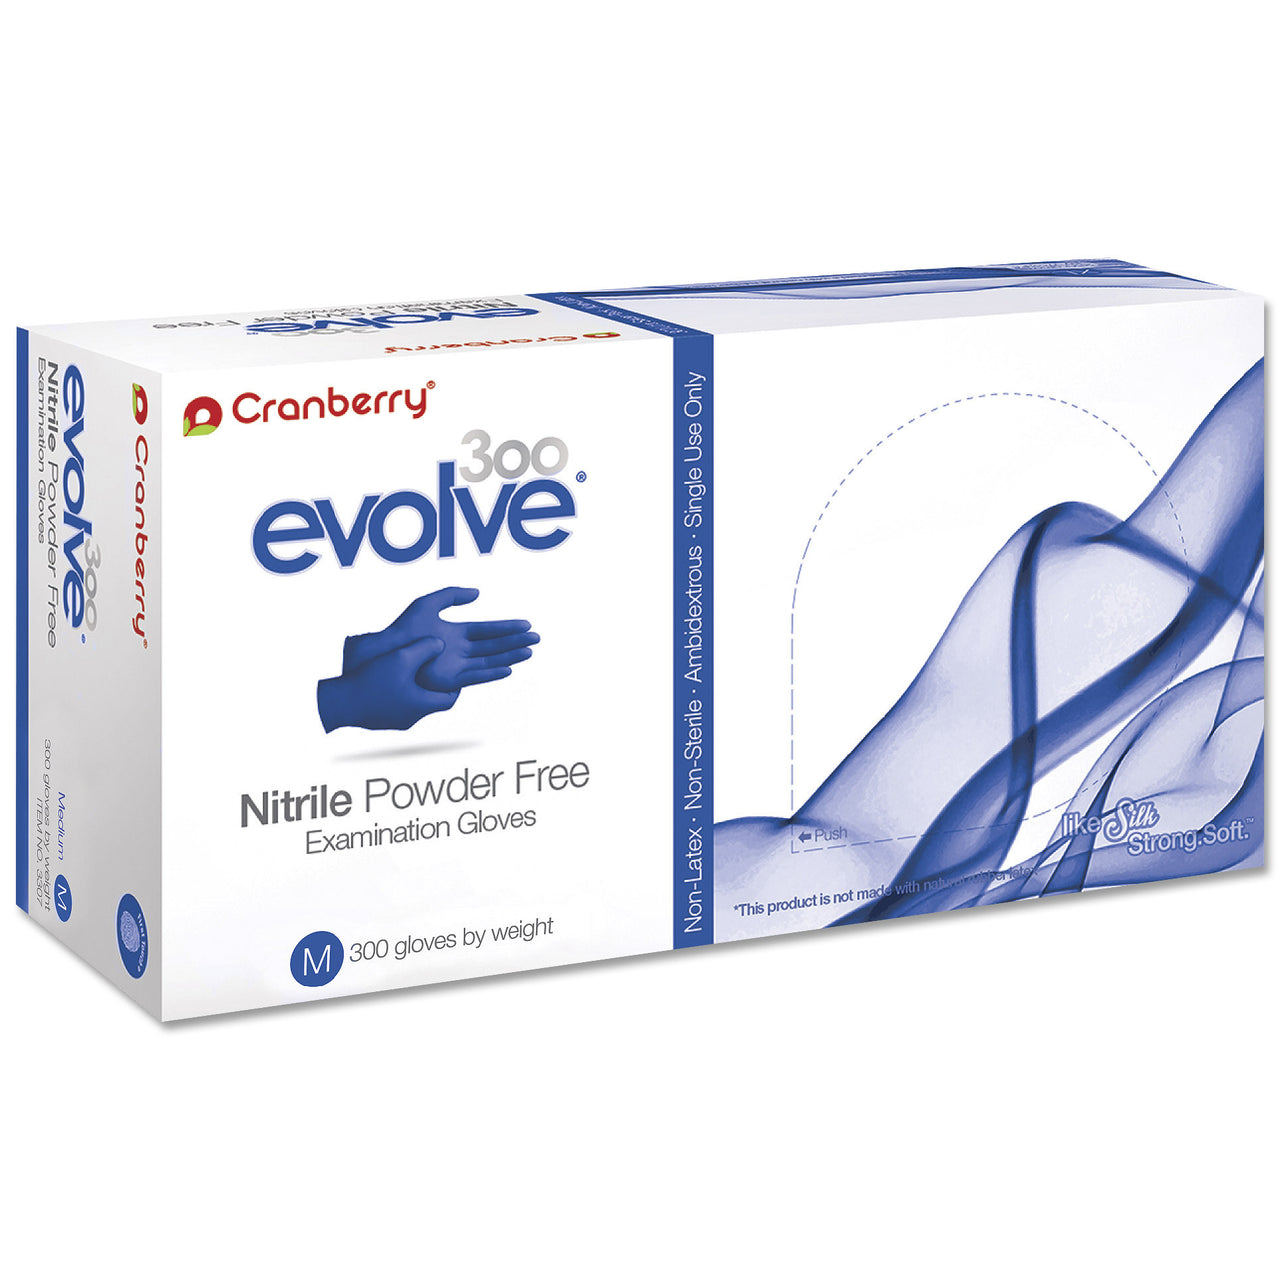 Low Priced Cranberry Evolve Blue Nitrile Gloves My Glove